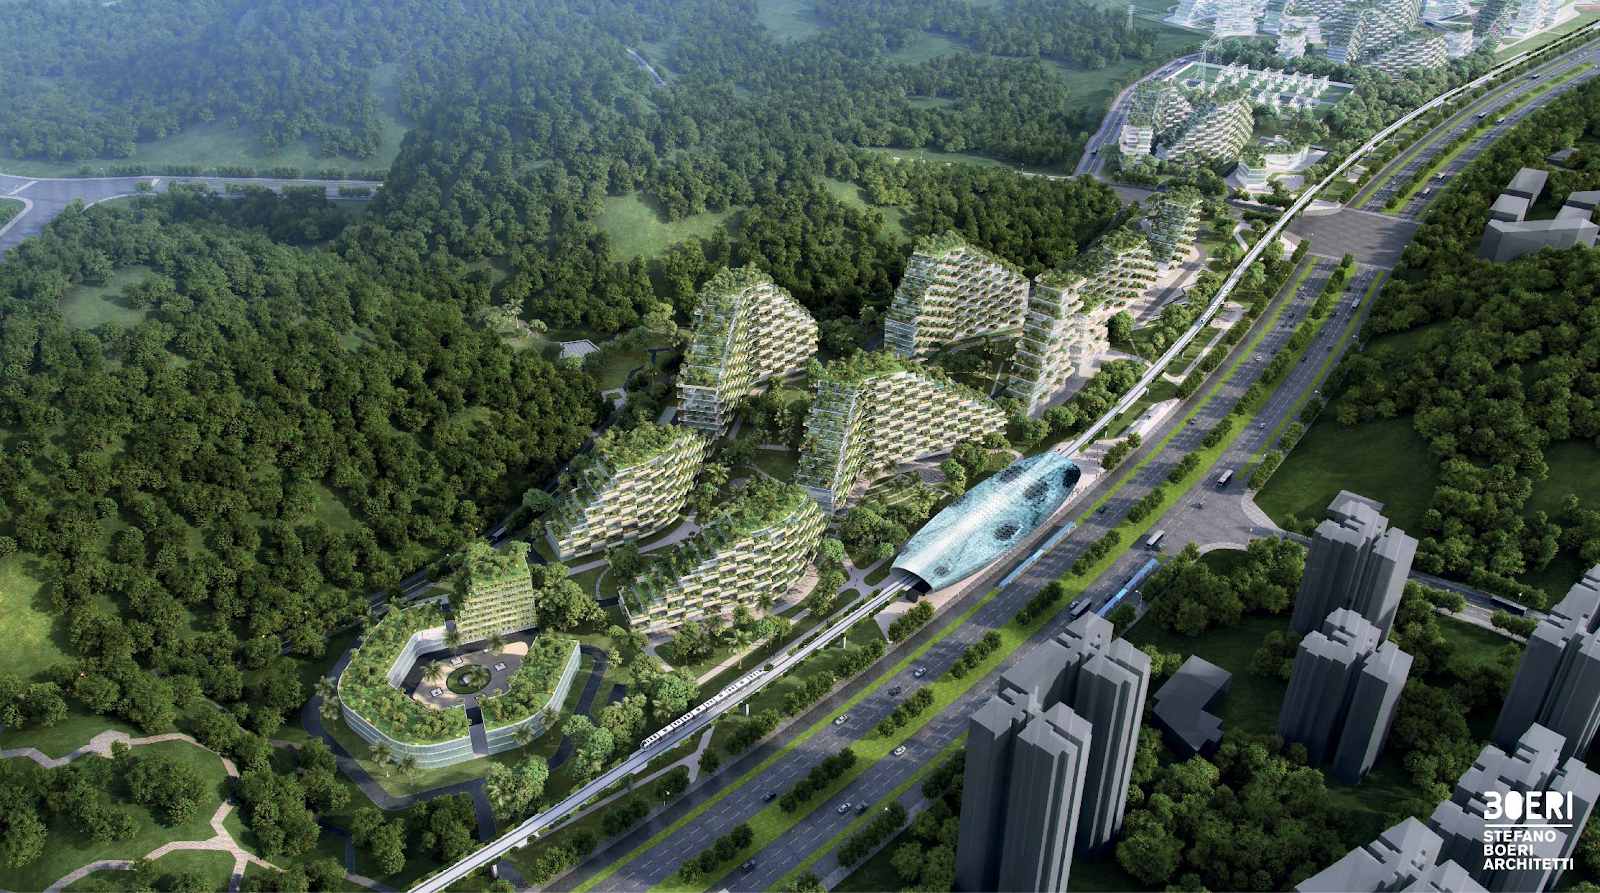 The Liuzhou Forest City will have more than 40,000 trees and 1 million plants on buildings.